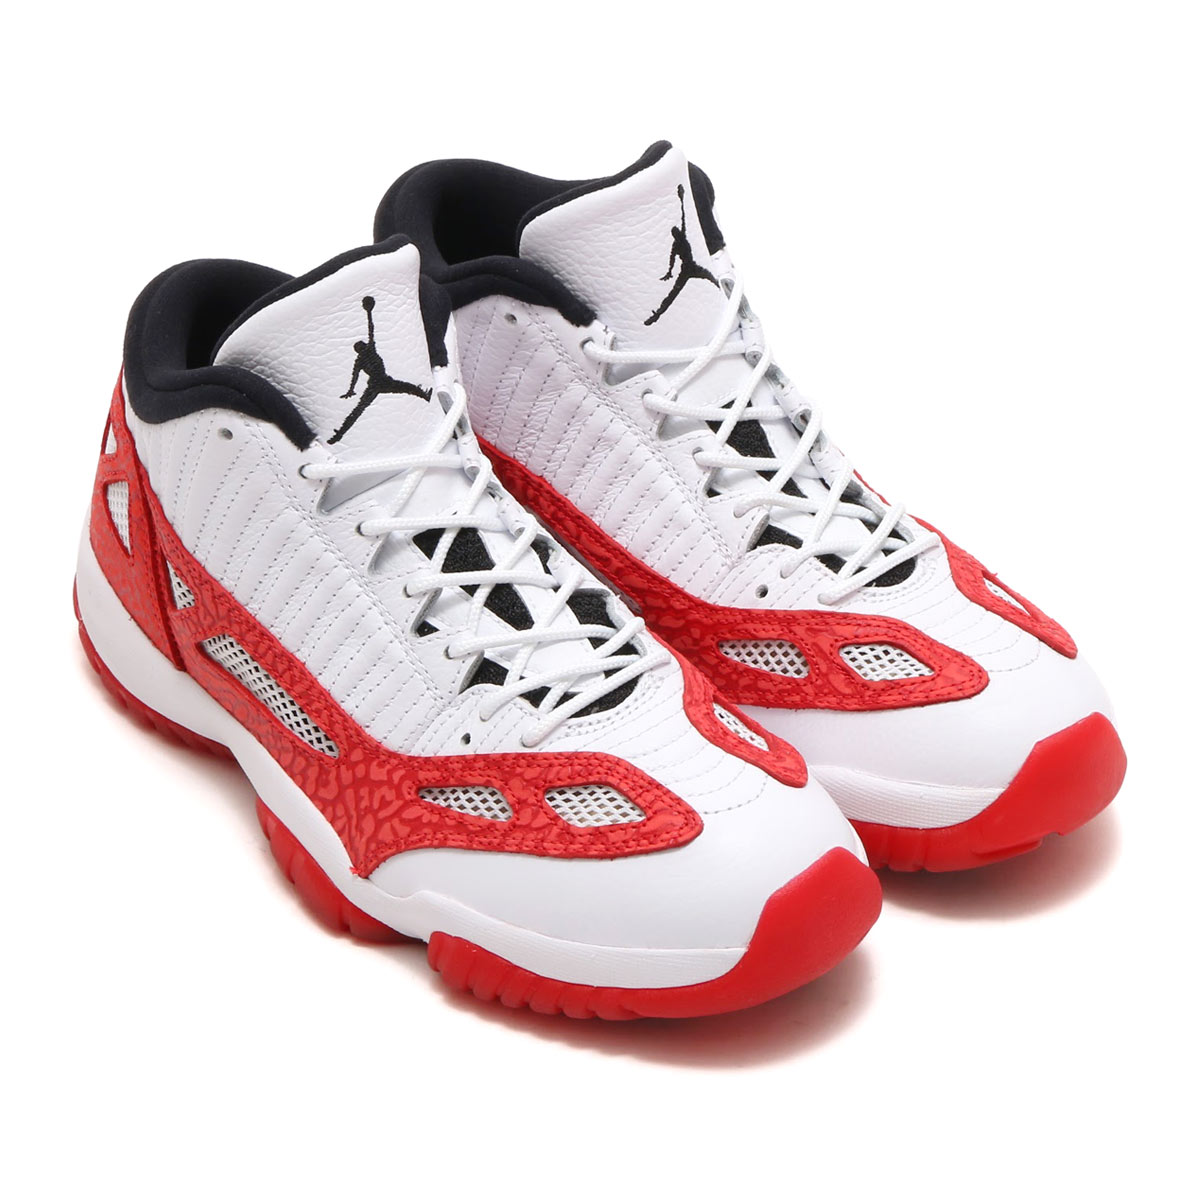 cd20c5304834 NIKE AIR JORDAN 11 RETRO LOW IE (Nike Air Jordan 11 nostalgic low IE)  (WHITE GYM RED-BLACK) 17HO-S